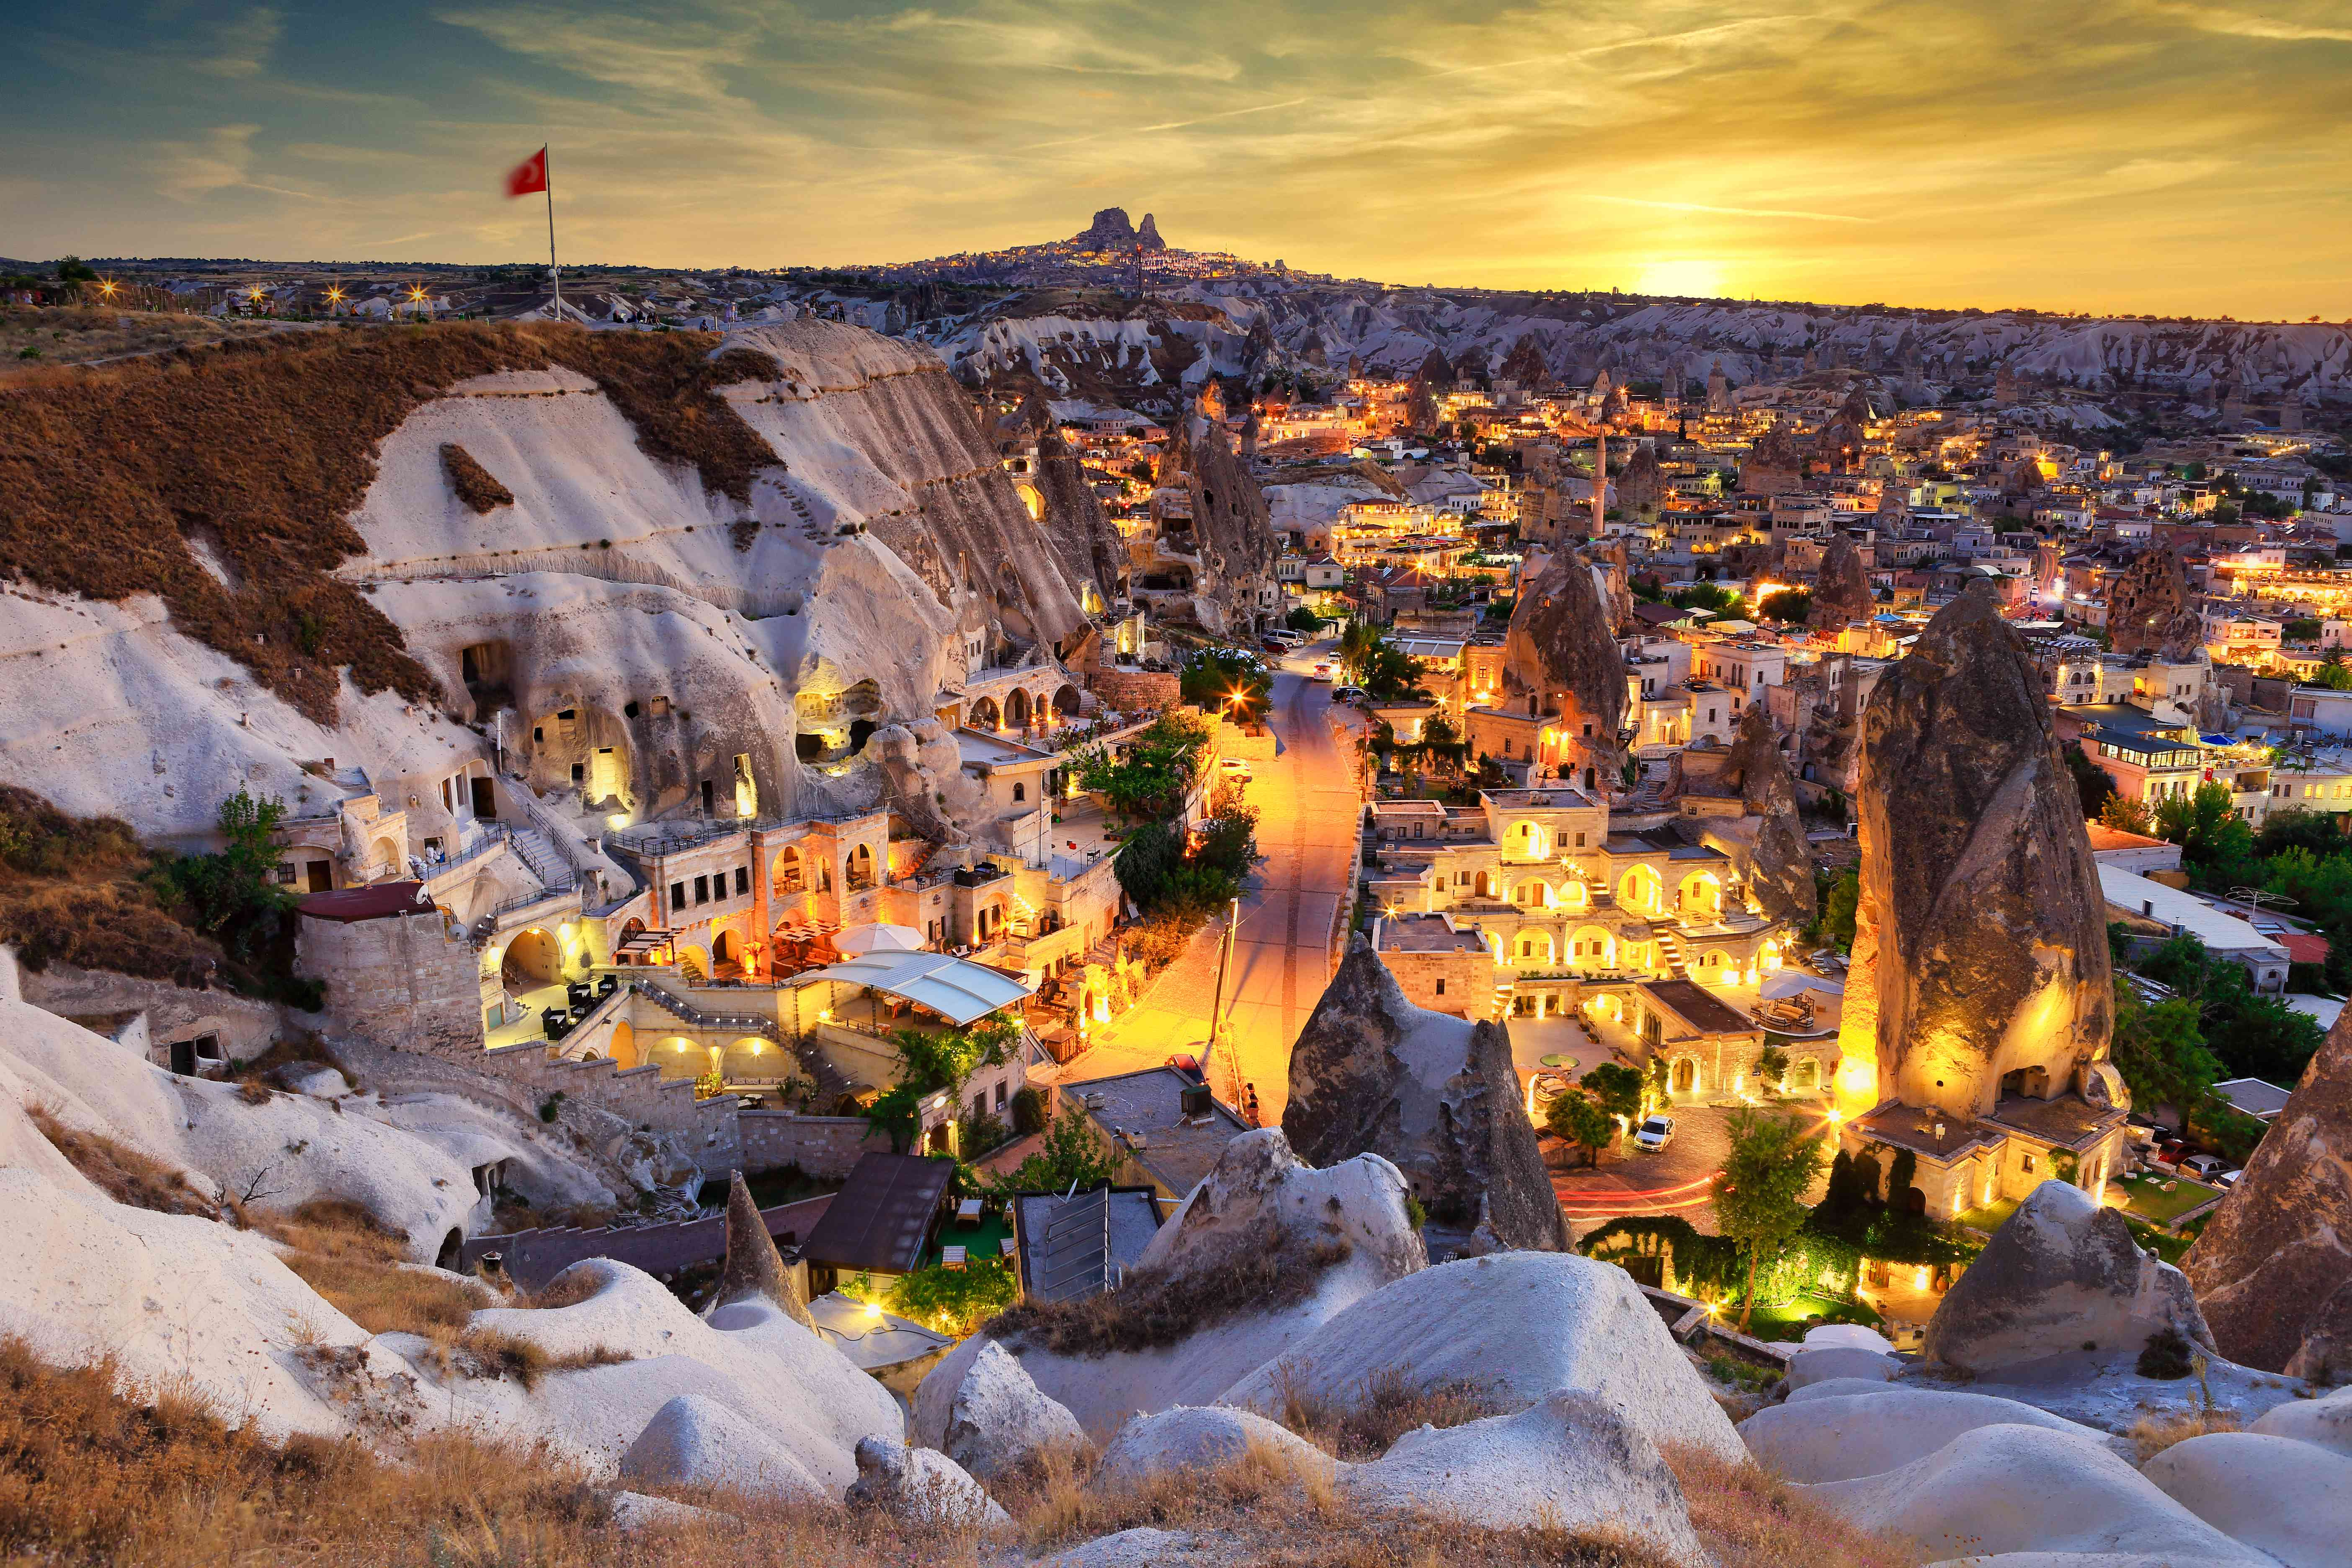 Aerial view of Goreme Village at dusk with street lights on